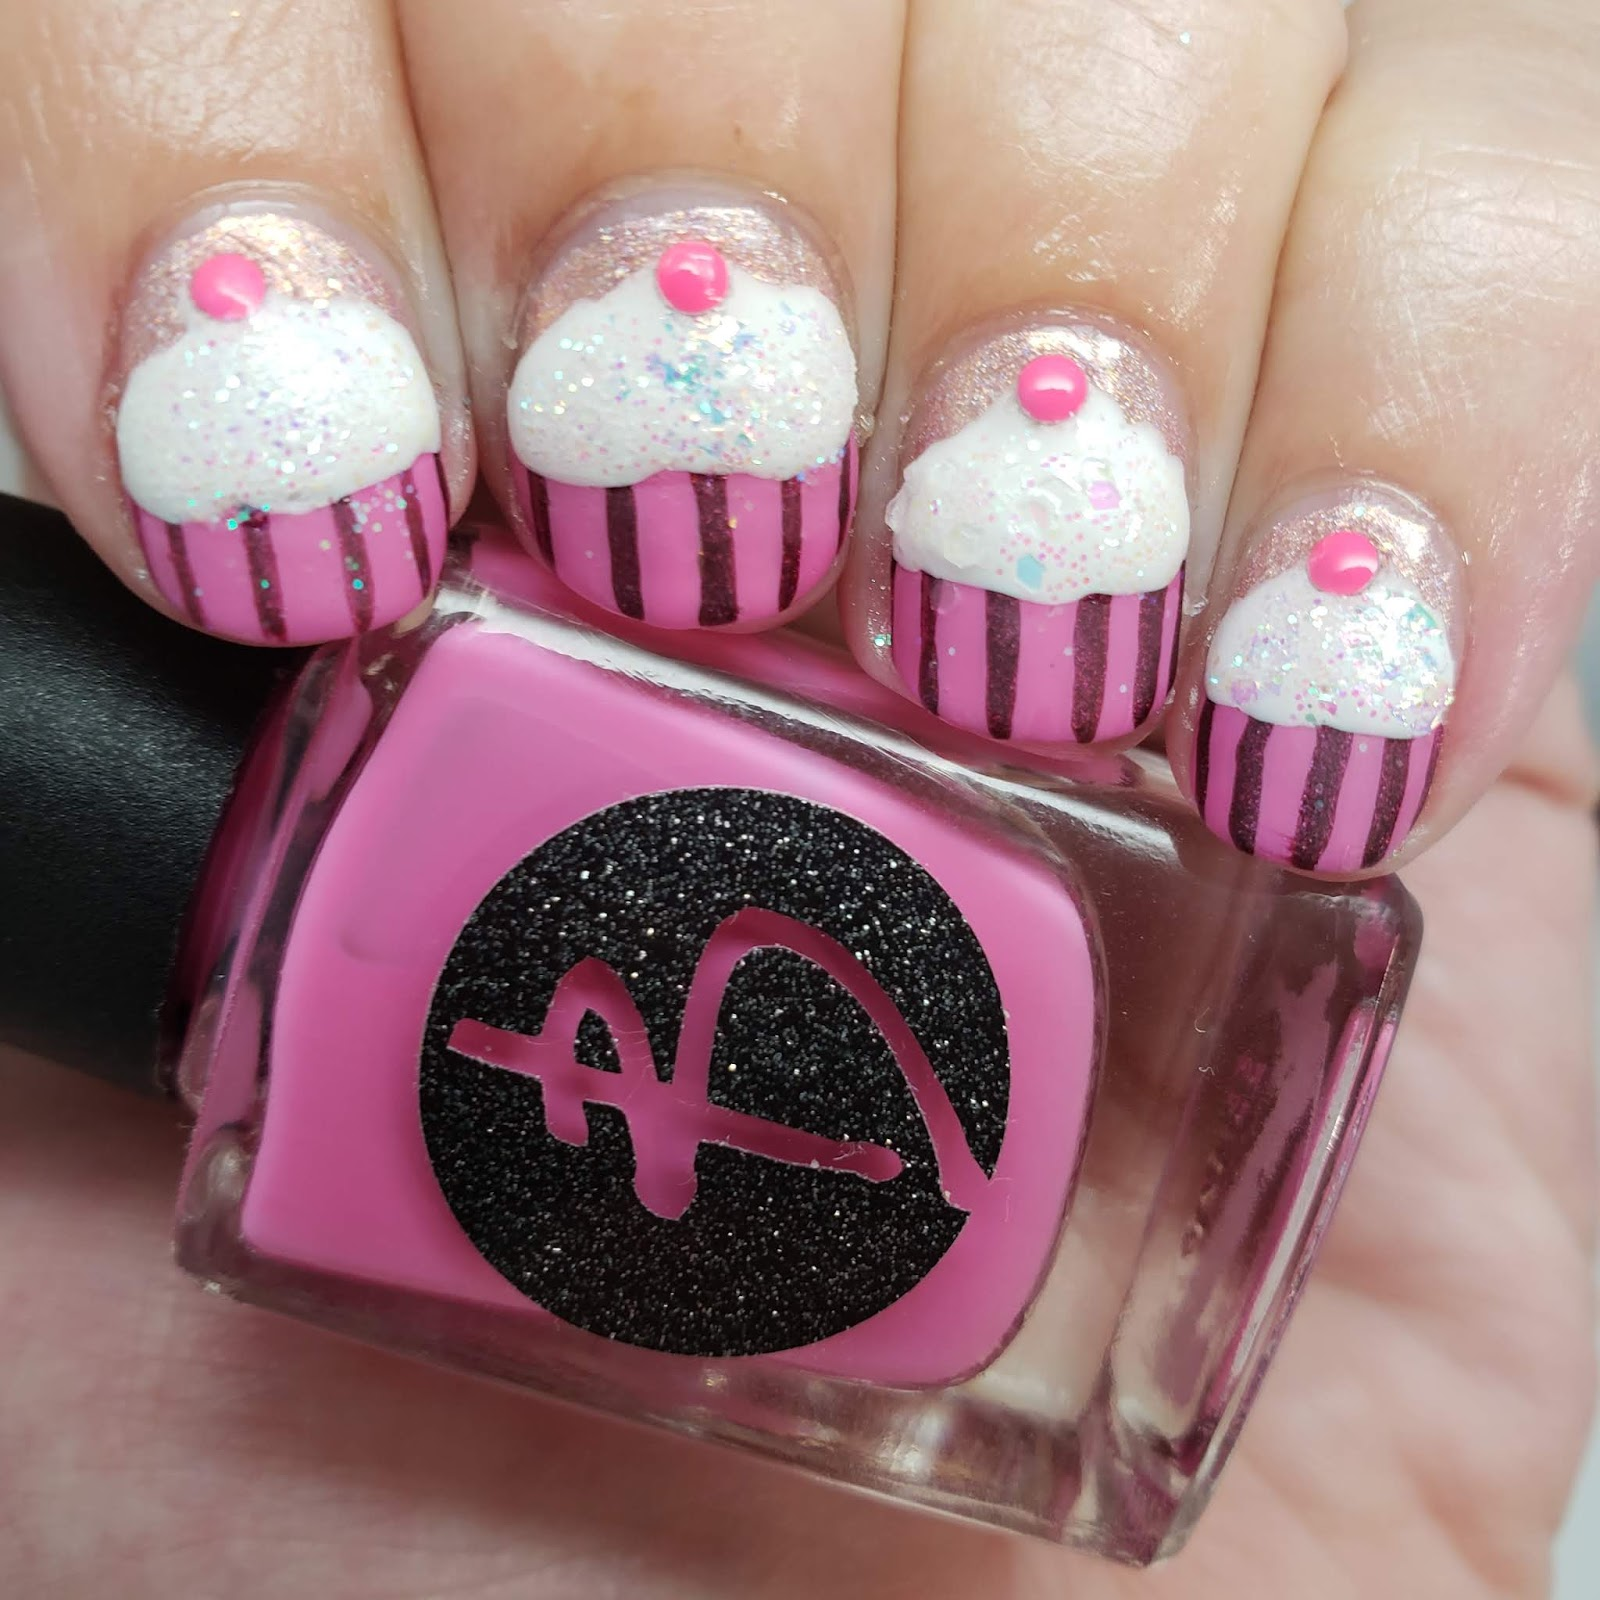 Intense Polish Therapy A Week Of Old Favorites Day 1 Cupcakes